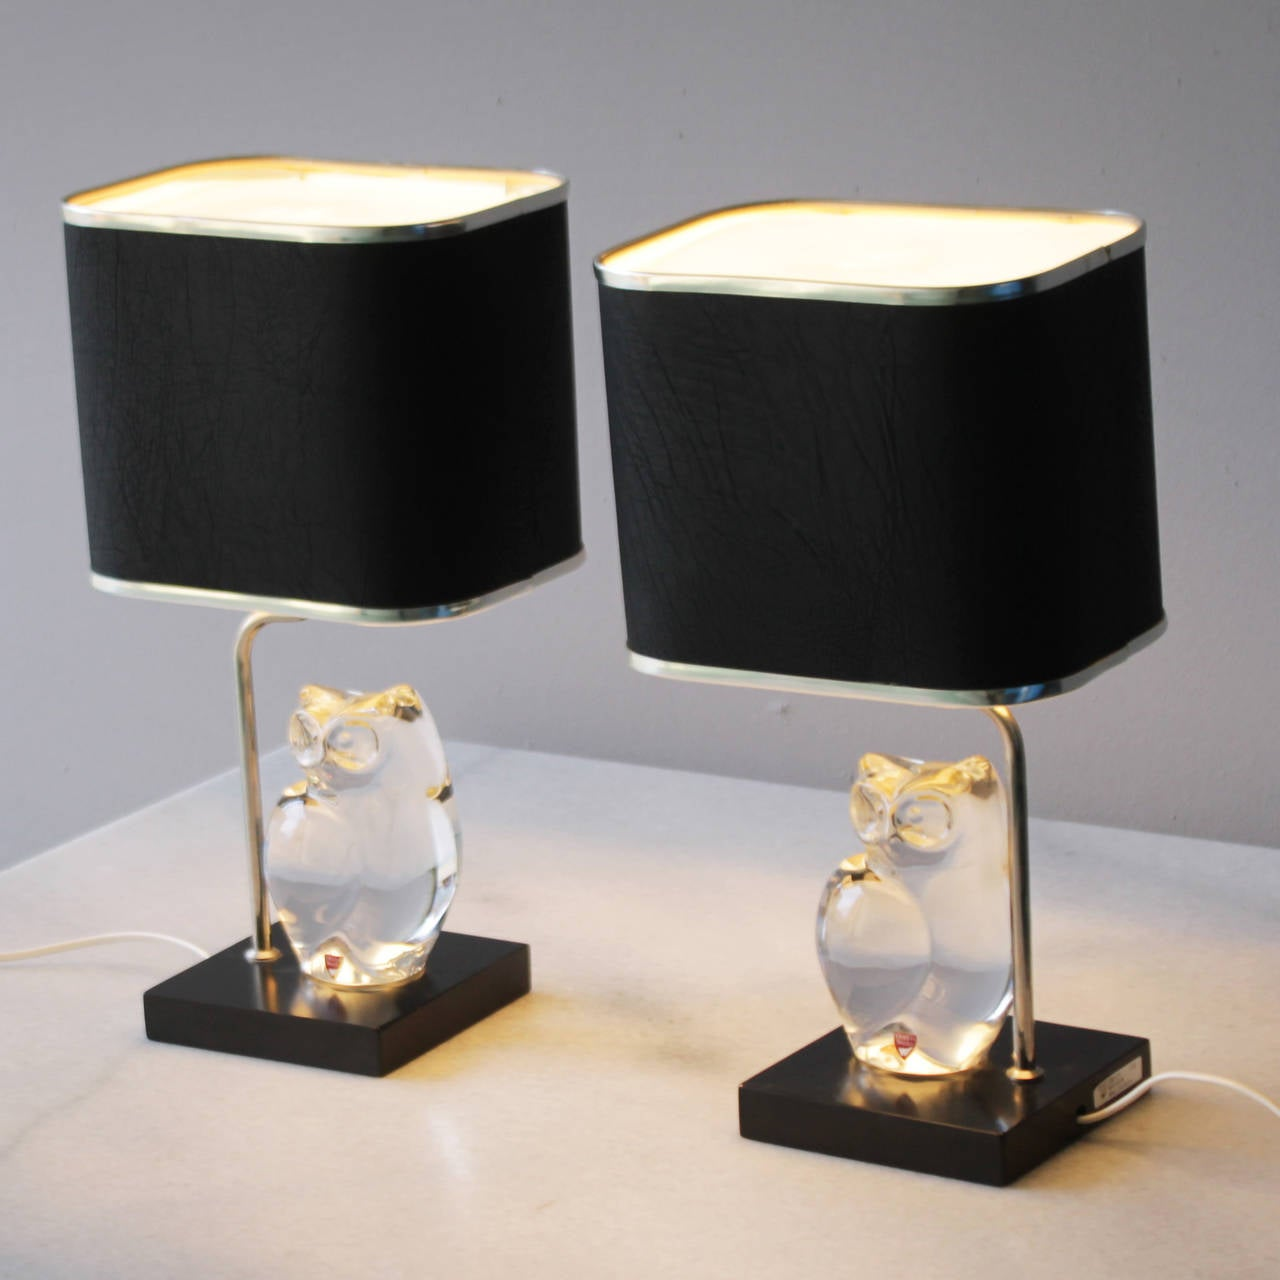 Set of table lamps with beautiful crystal owls by Olle Alberius for Orrefors Sweden. Black faux leather shades, but maybe it's real leather, I'm not sure can't see or feel the difference. Acrylic diffuser on top of the shades. The lamps are marked